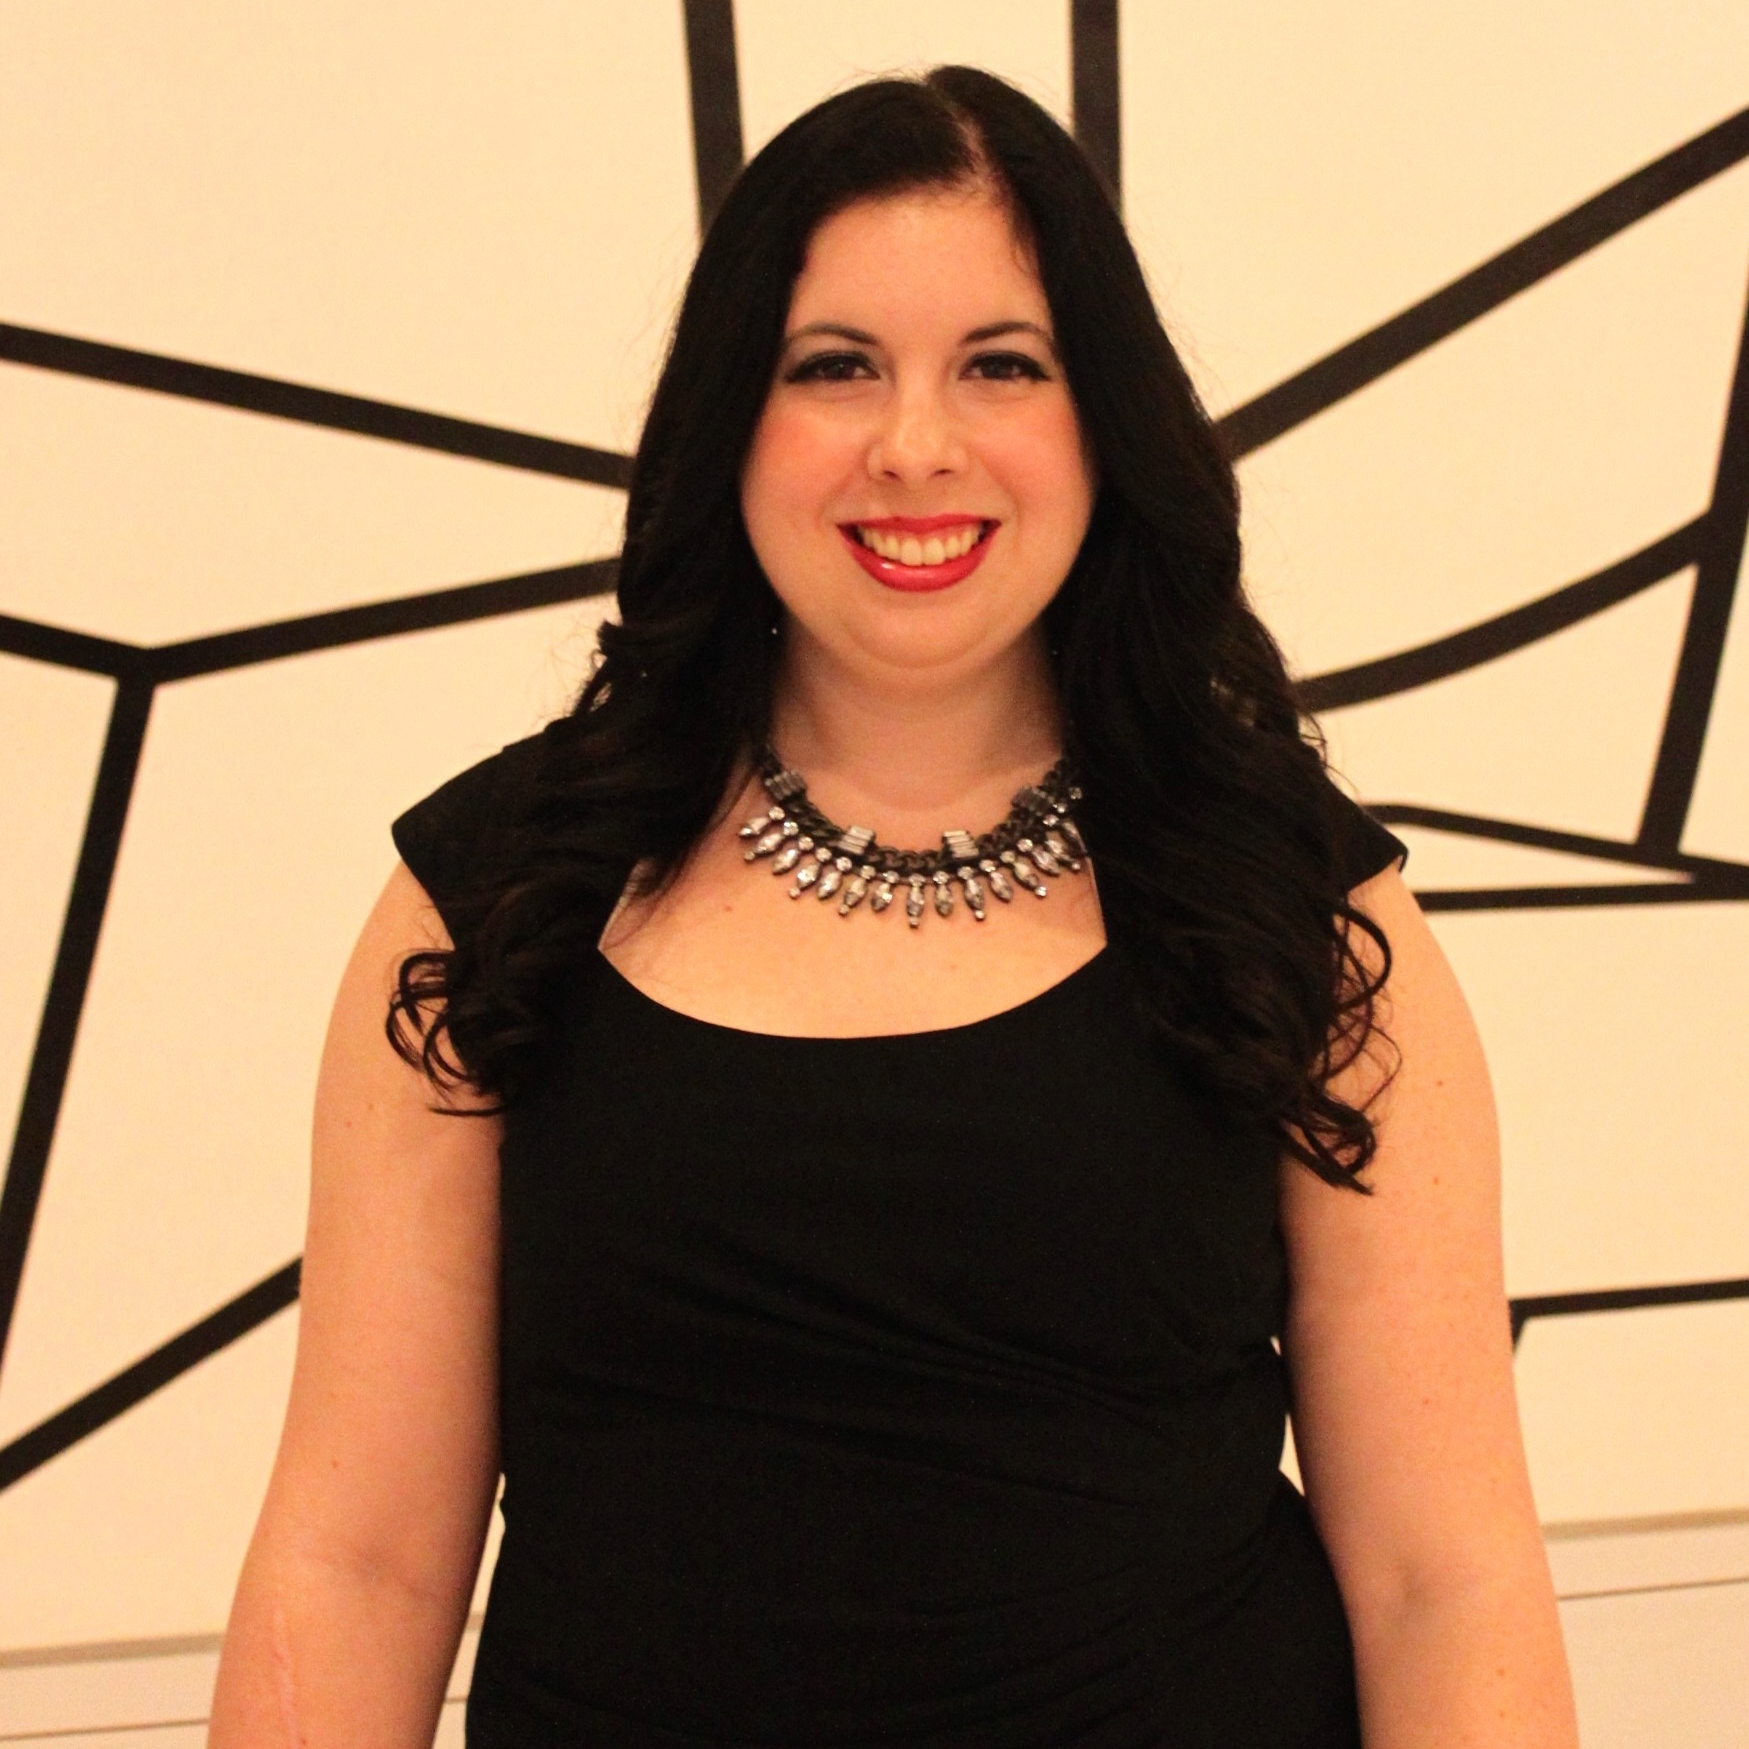 Helen O'Rourke, Tenor Section Manager  Helen joined Sirens of Gotham in January 2016. This is her first experience singing barbershop, and what a wonderful experience it has been! In New York, she has been a member of contemporary a cappella group The Callbacks, as well as the Fieldston Choral Society.  Helen holds a Bachelor of Arts in Theatre Arts and Music from Drew University, where she was a member of the Drew University Chorale, Madrigal Singers, and Musical Director for the all-female a cappella group On A Different Note. She has been singing in various groups since she was 5, and will continue to do so as long as they will have her.